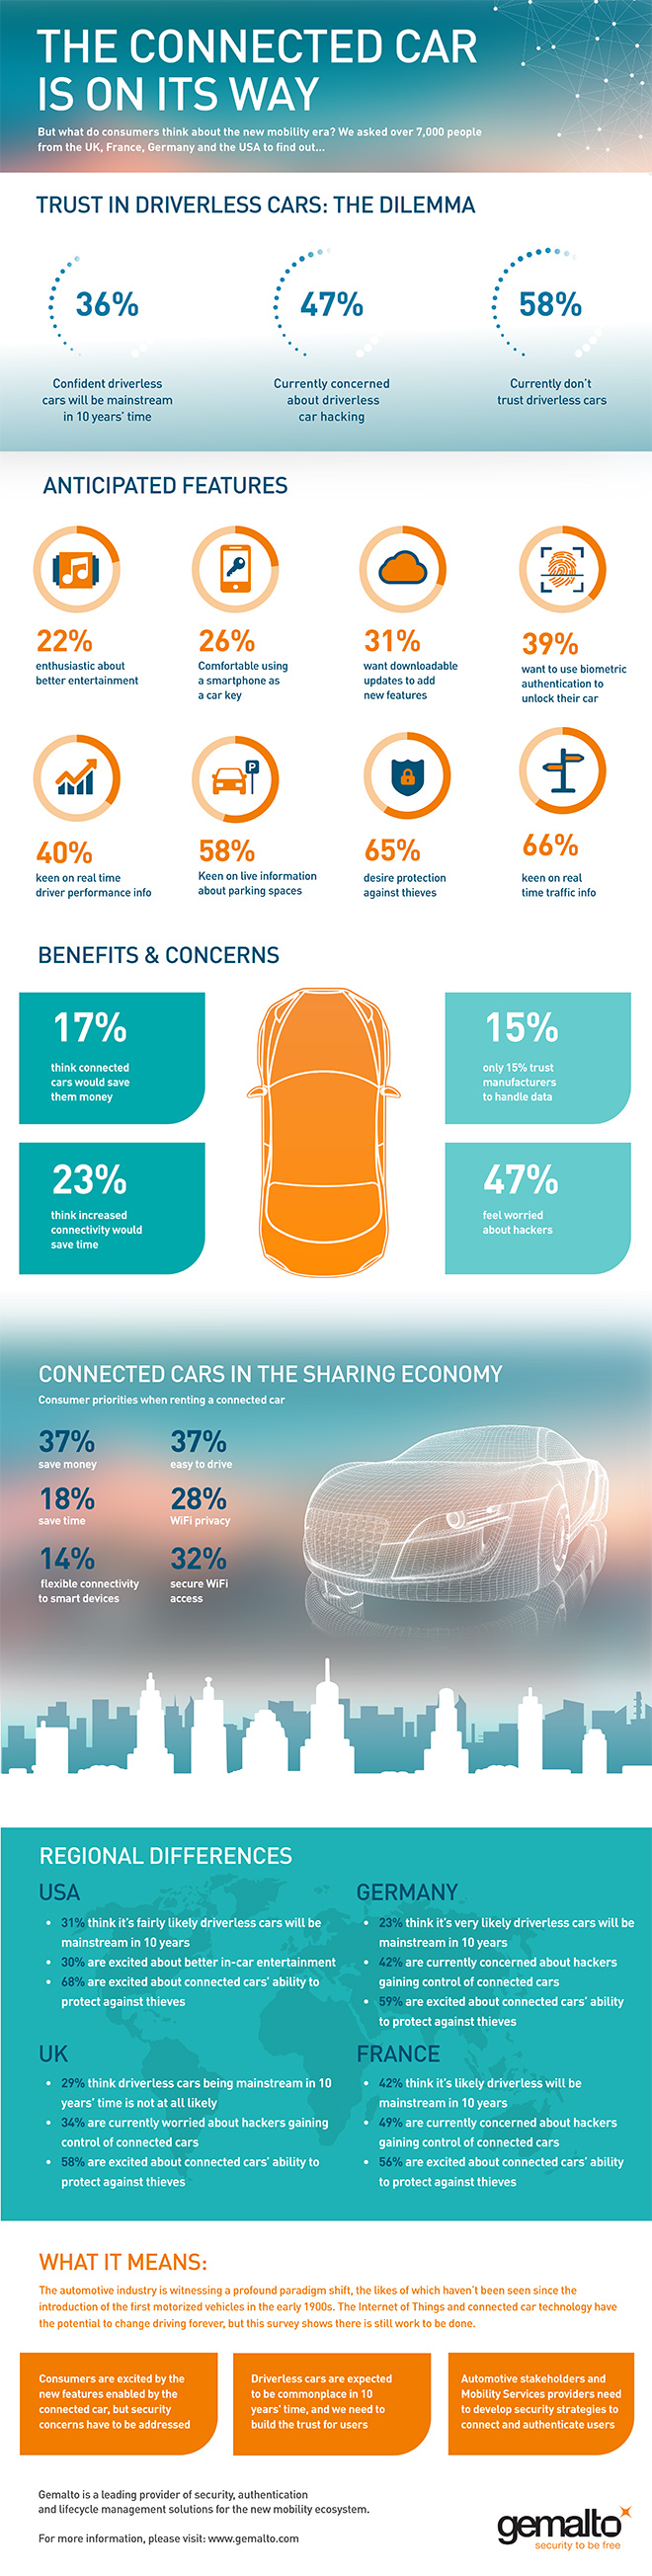 Infographic - The connected car era is on its way